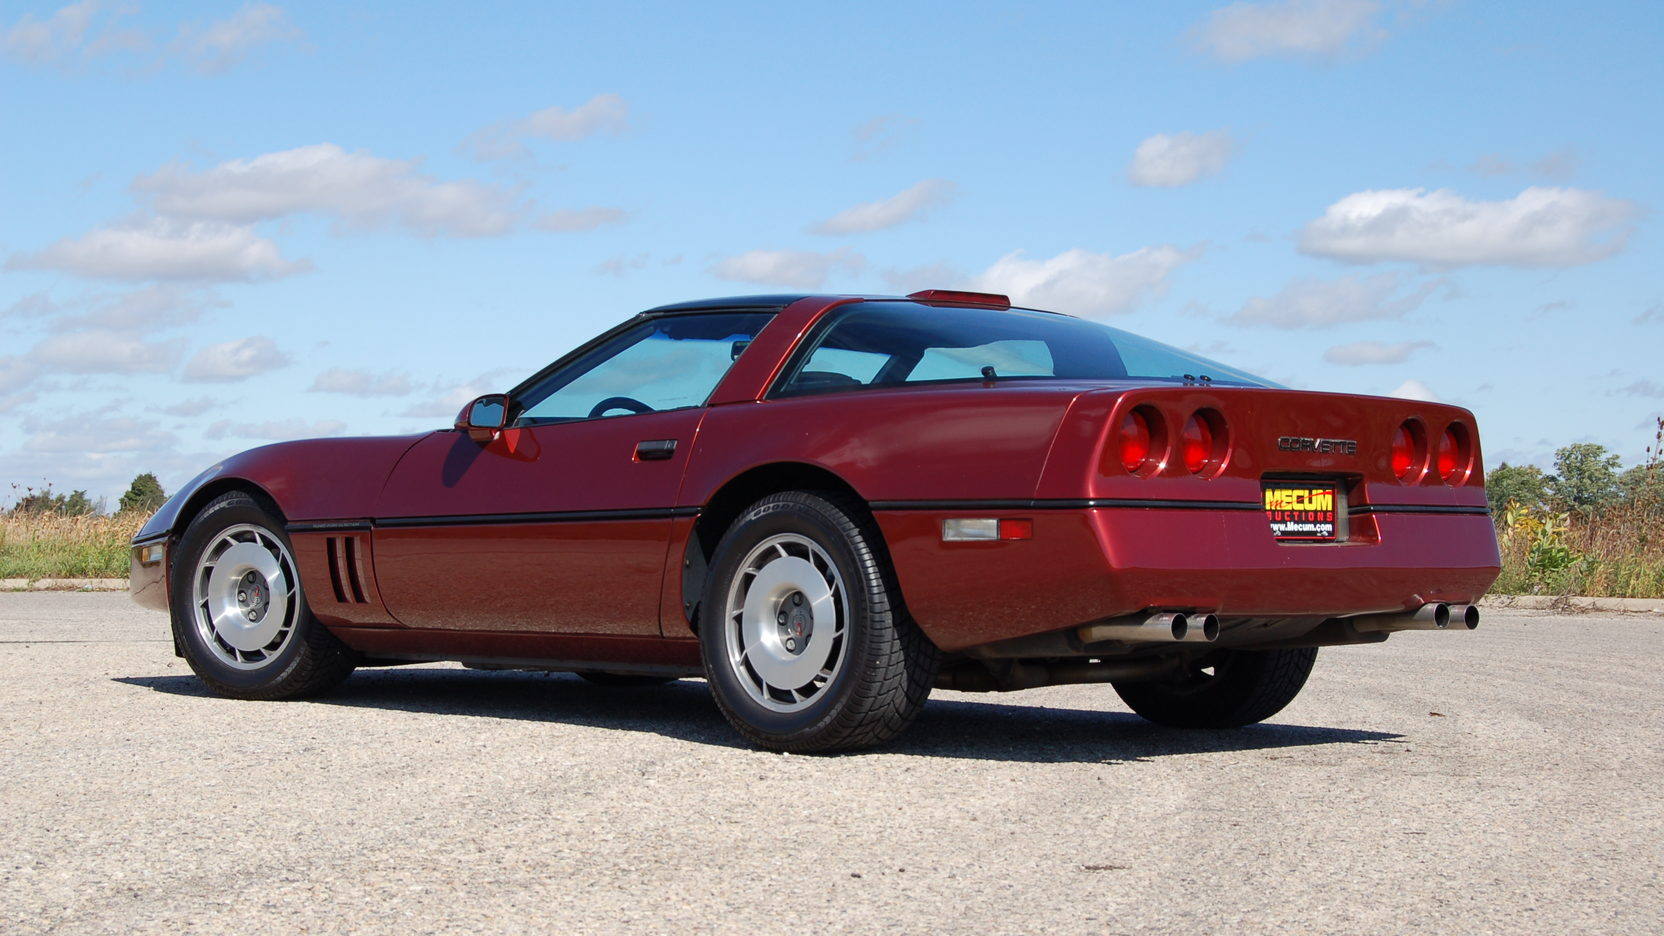 1987 Chevrolet Corvette rear 3/4